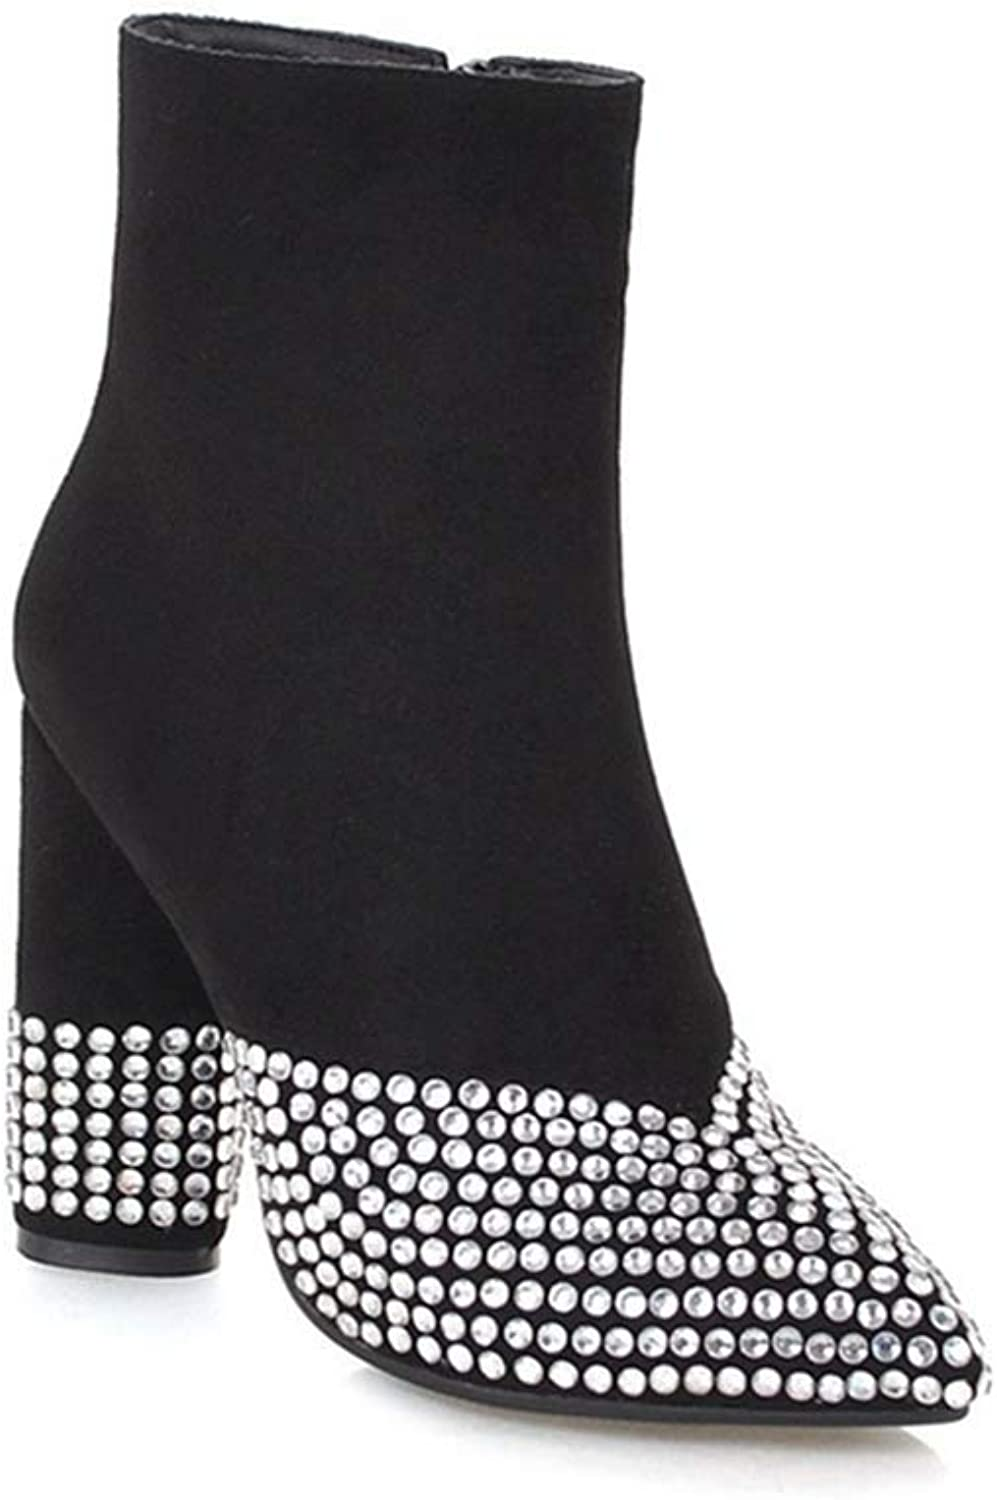 GIY Women's Sparkle Rhinestone High Heeled Ankle Boots Pointy Toe Zipper Comfort Winter Dress Short Bootie